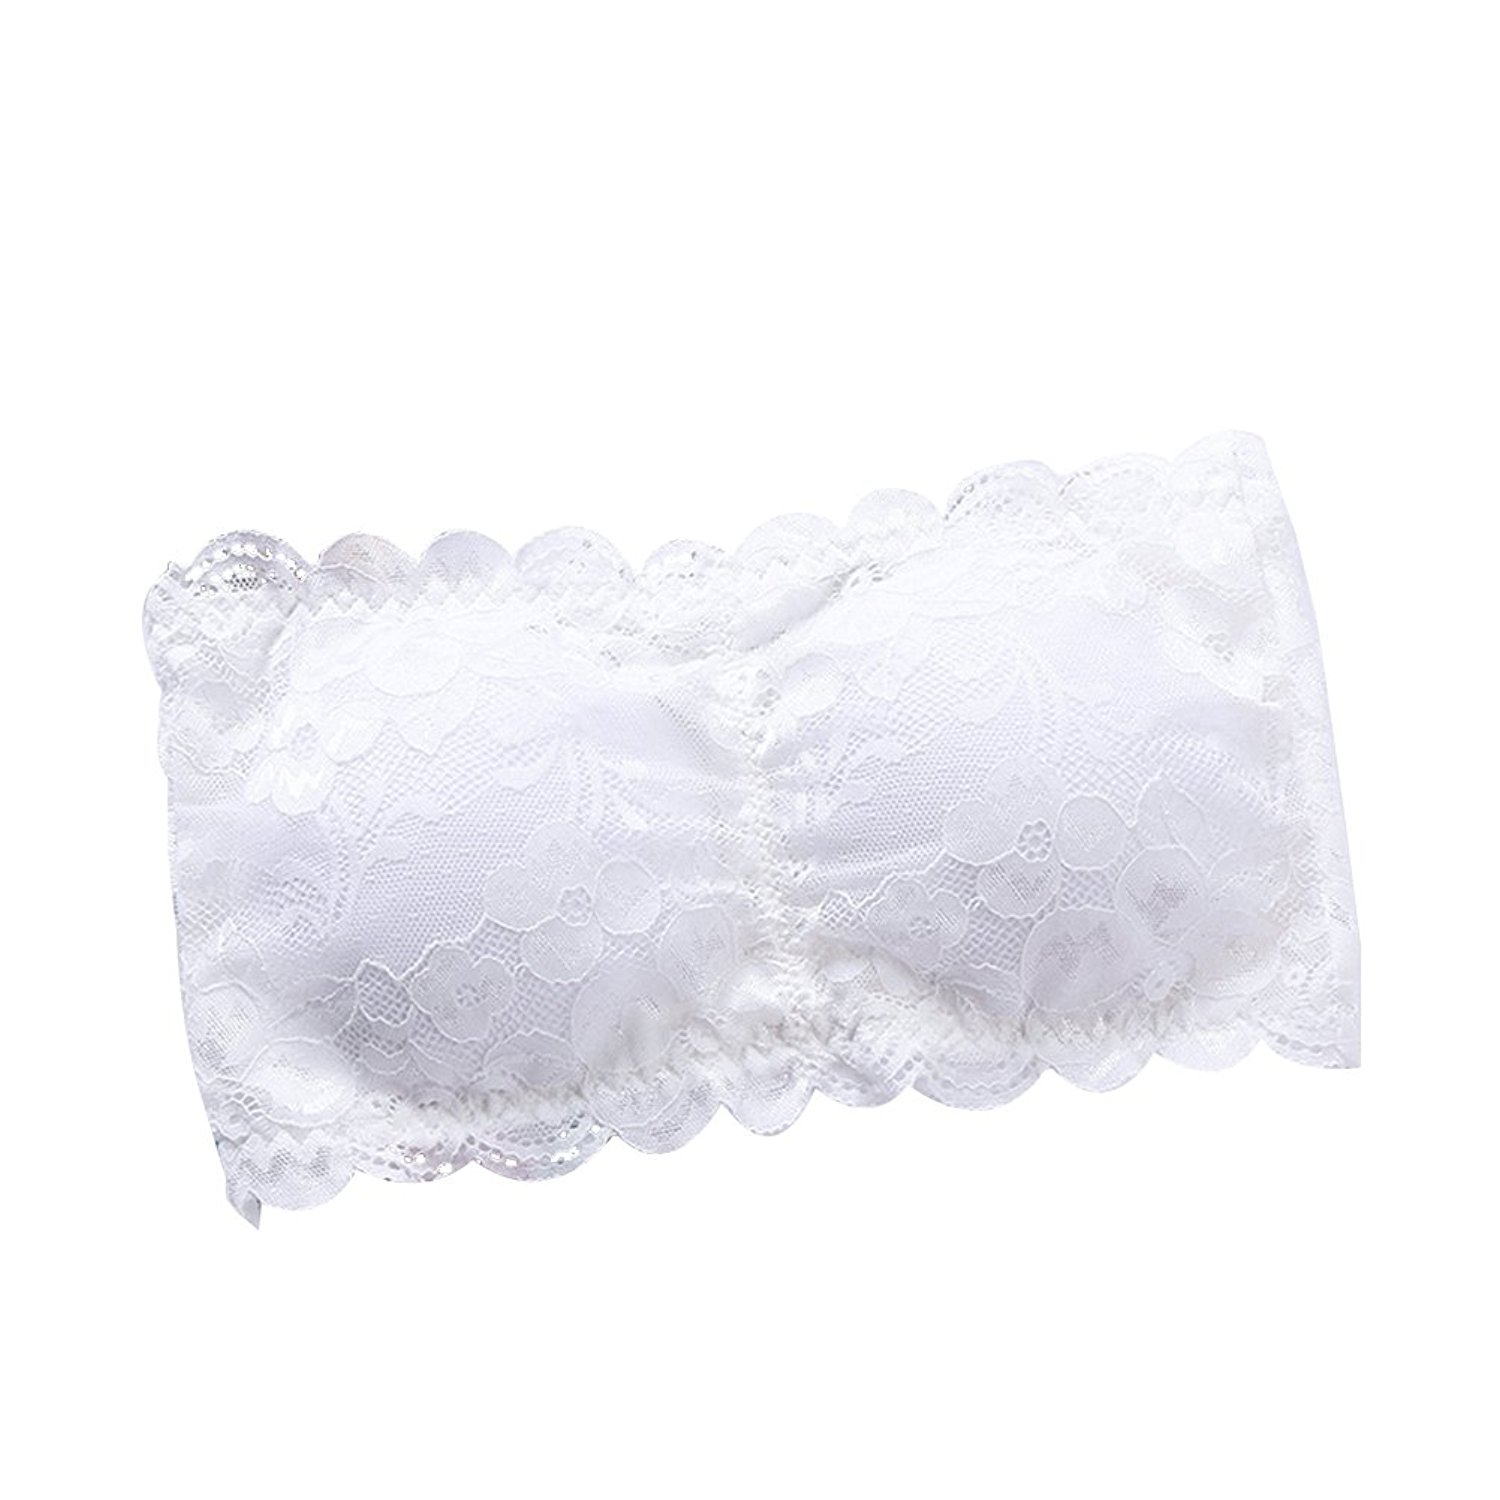 ee7ab5e7e58d Get Quotations · OULII Women Strapless Lace Bandeau Bra Paded Removable  Seamless Stretch Bandeau Tube Bra Top (White